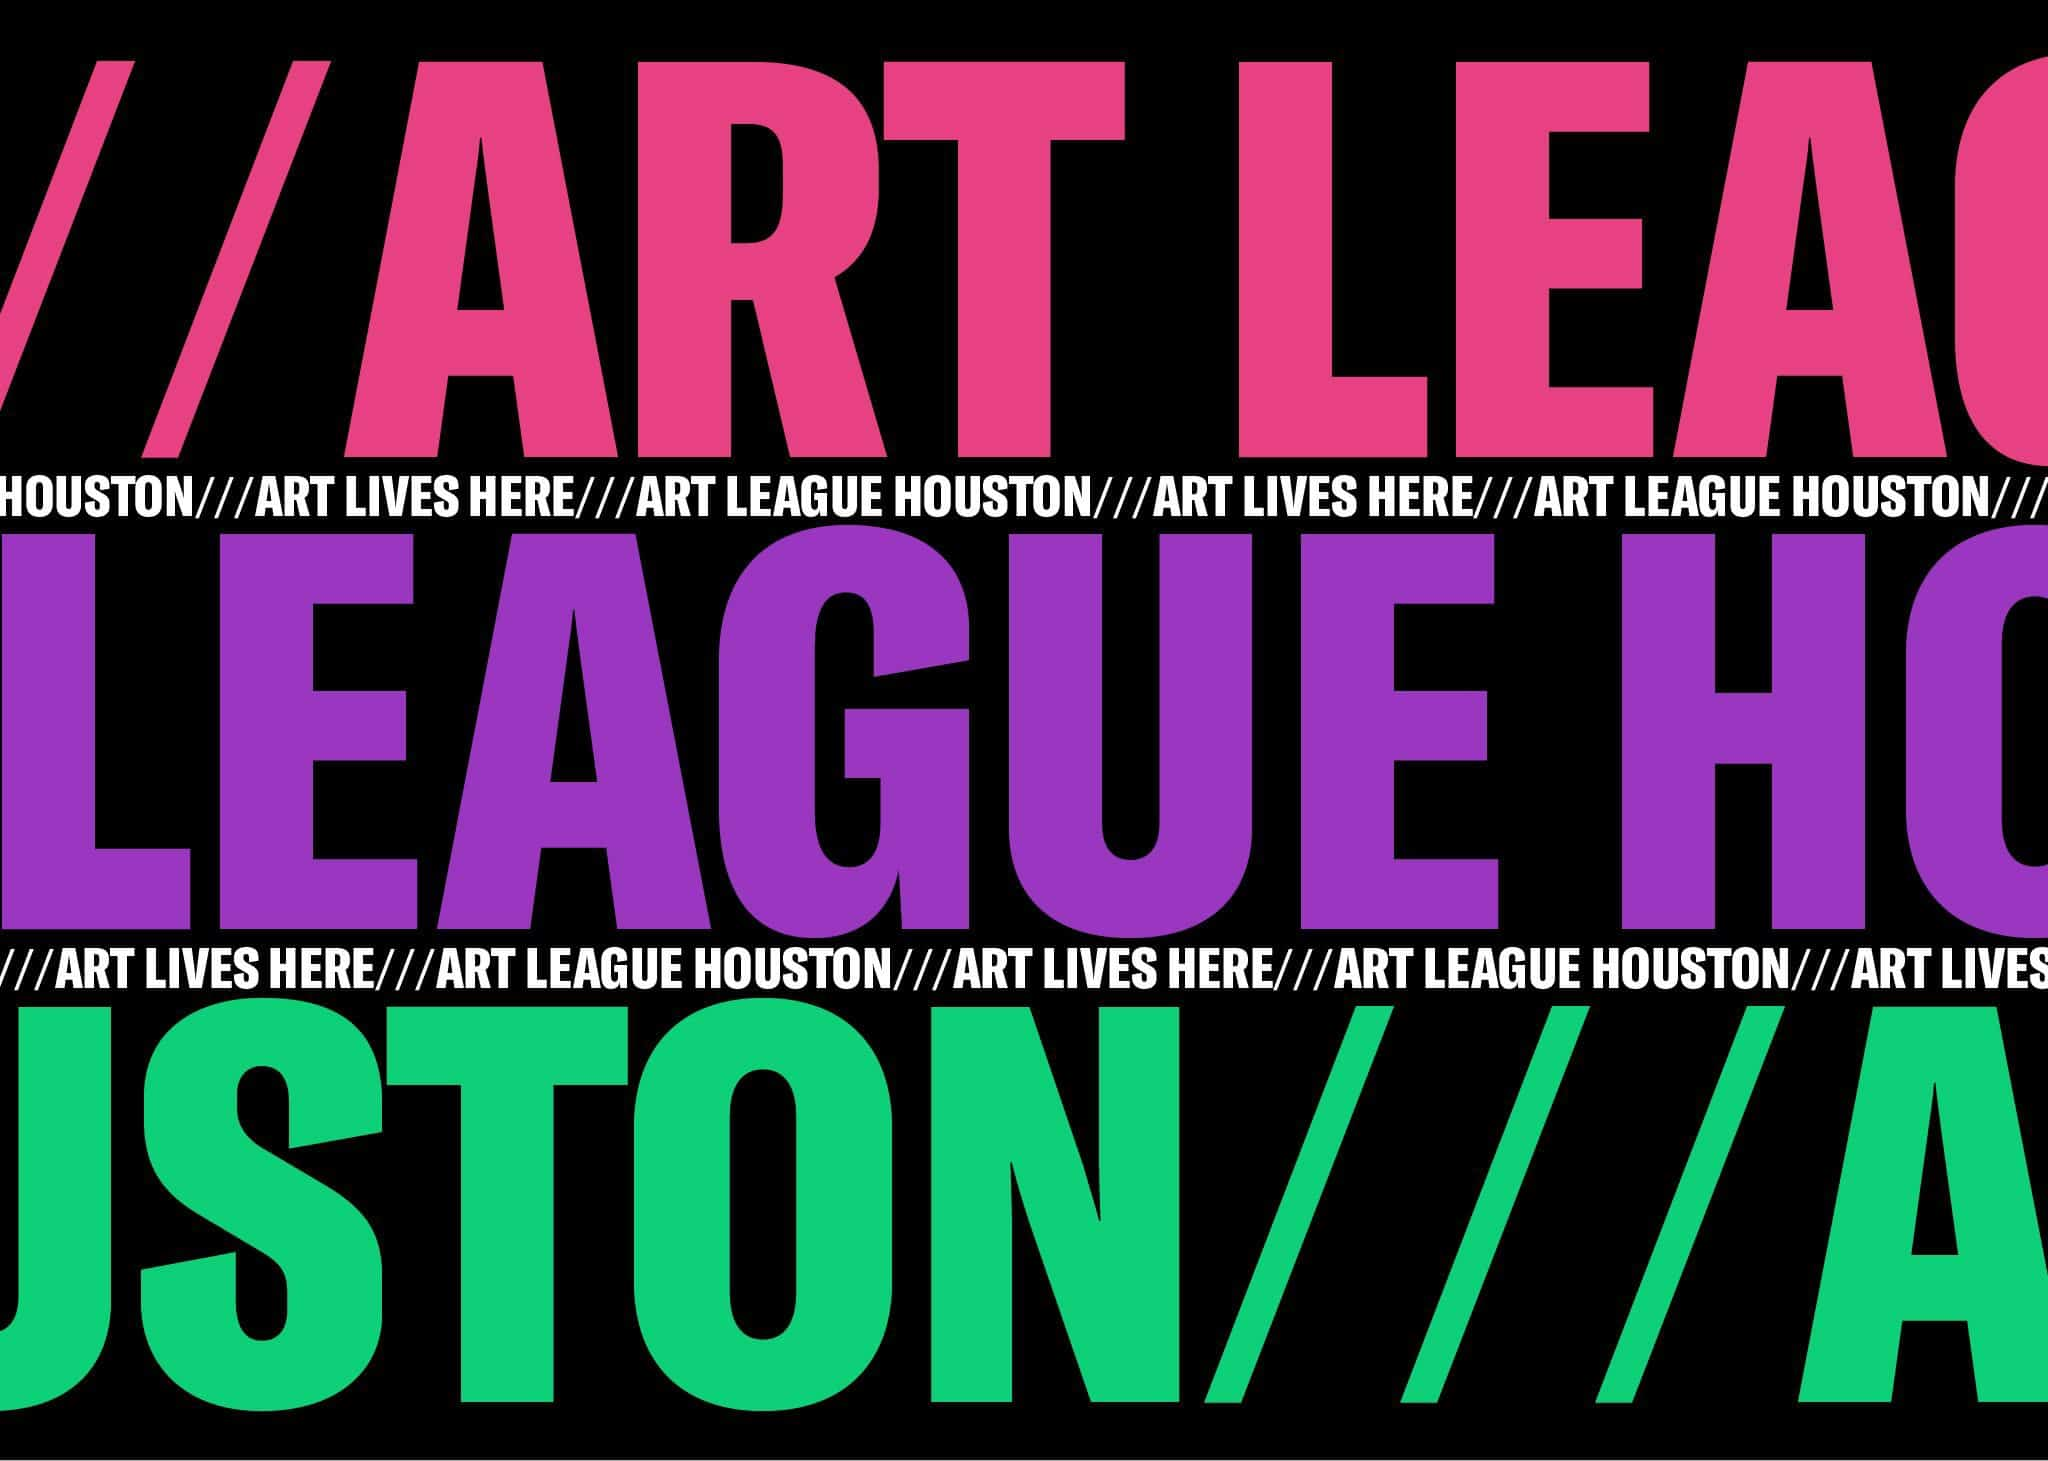 Website graphic for Art League Houston | Designed by Field of Study: A branding and graphic design consultancy | Houston TX | Jennifer Blanco & John Earles